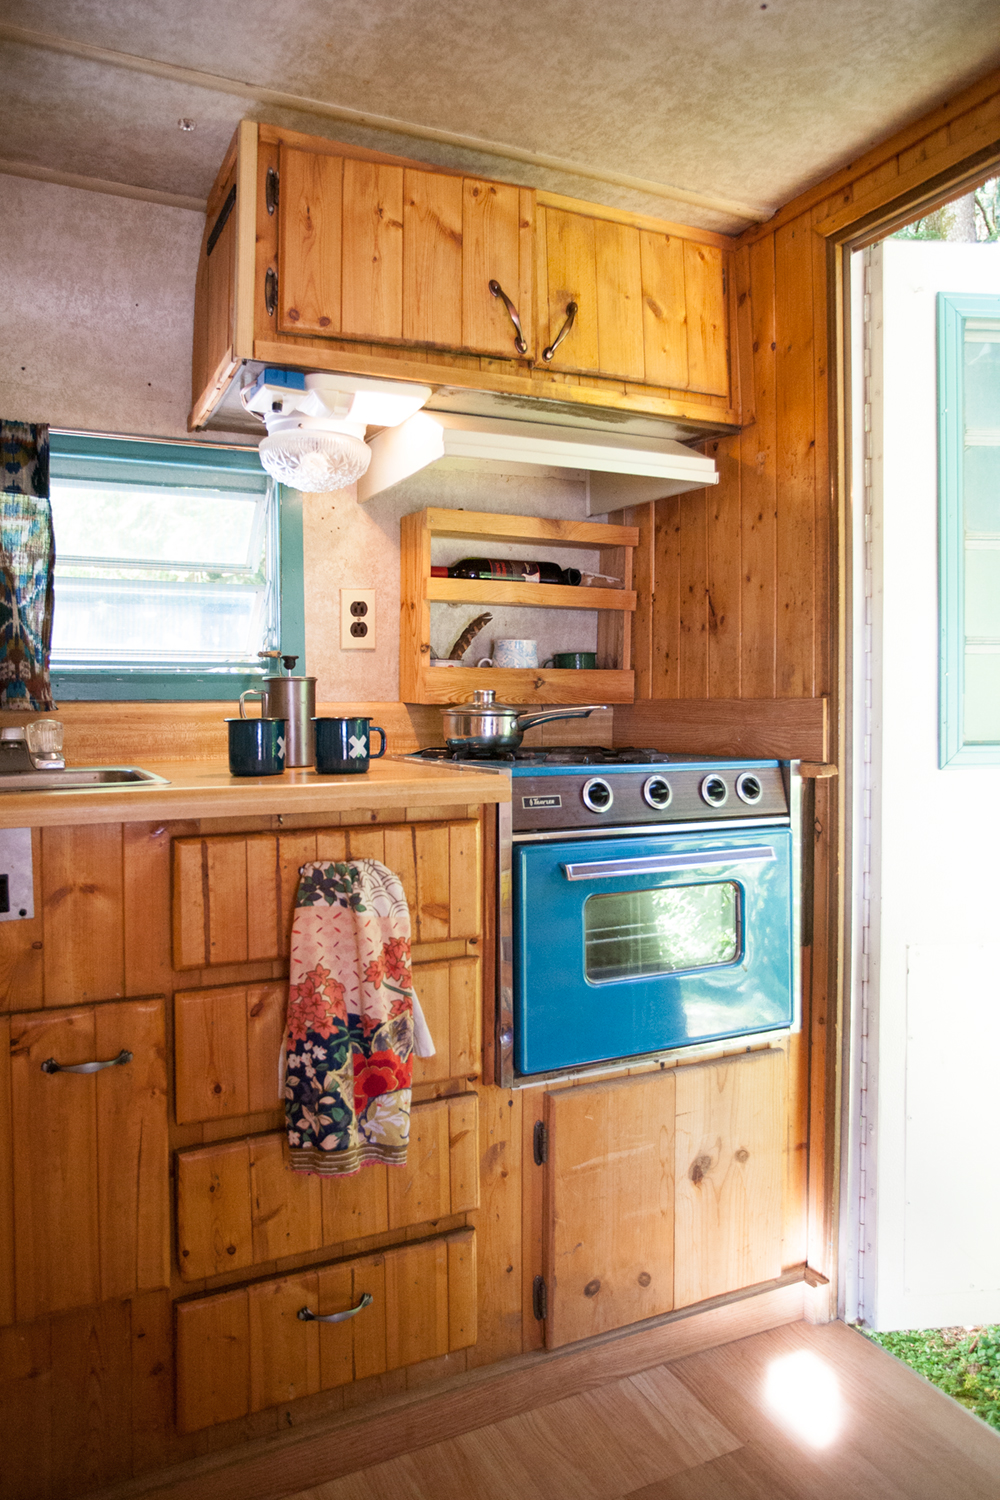 The kitchen is my favorite part of Lucille, because we both love to cook and there is just enough room for dancing! The original oven was one of the main selling points, not only does it work, but it happens to be my favorite color.